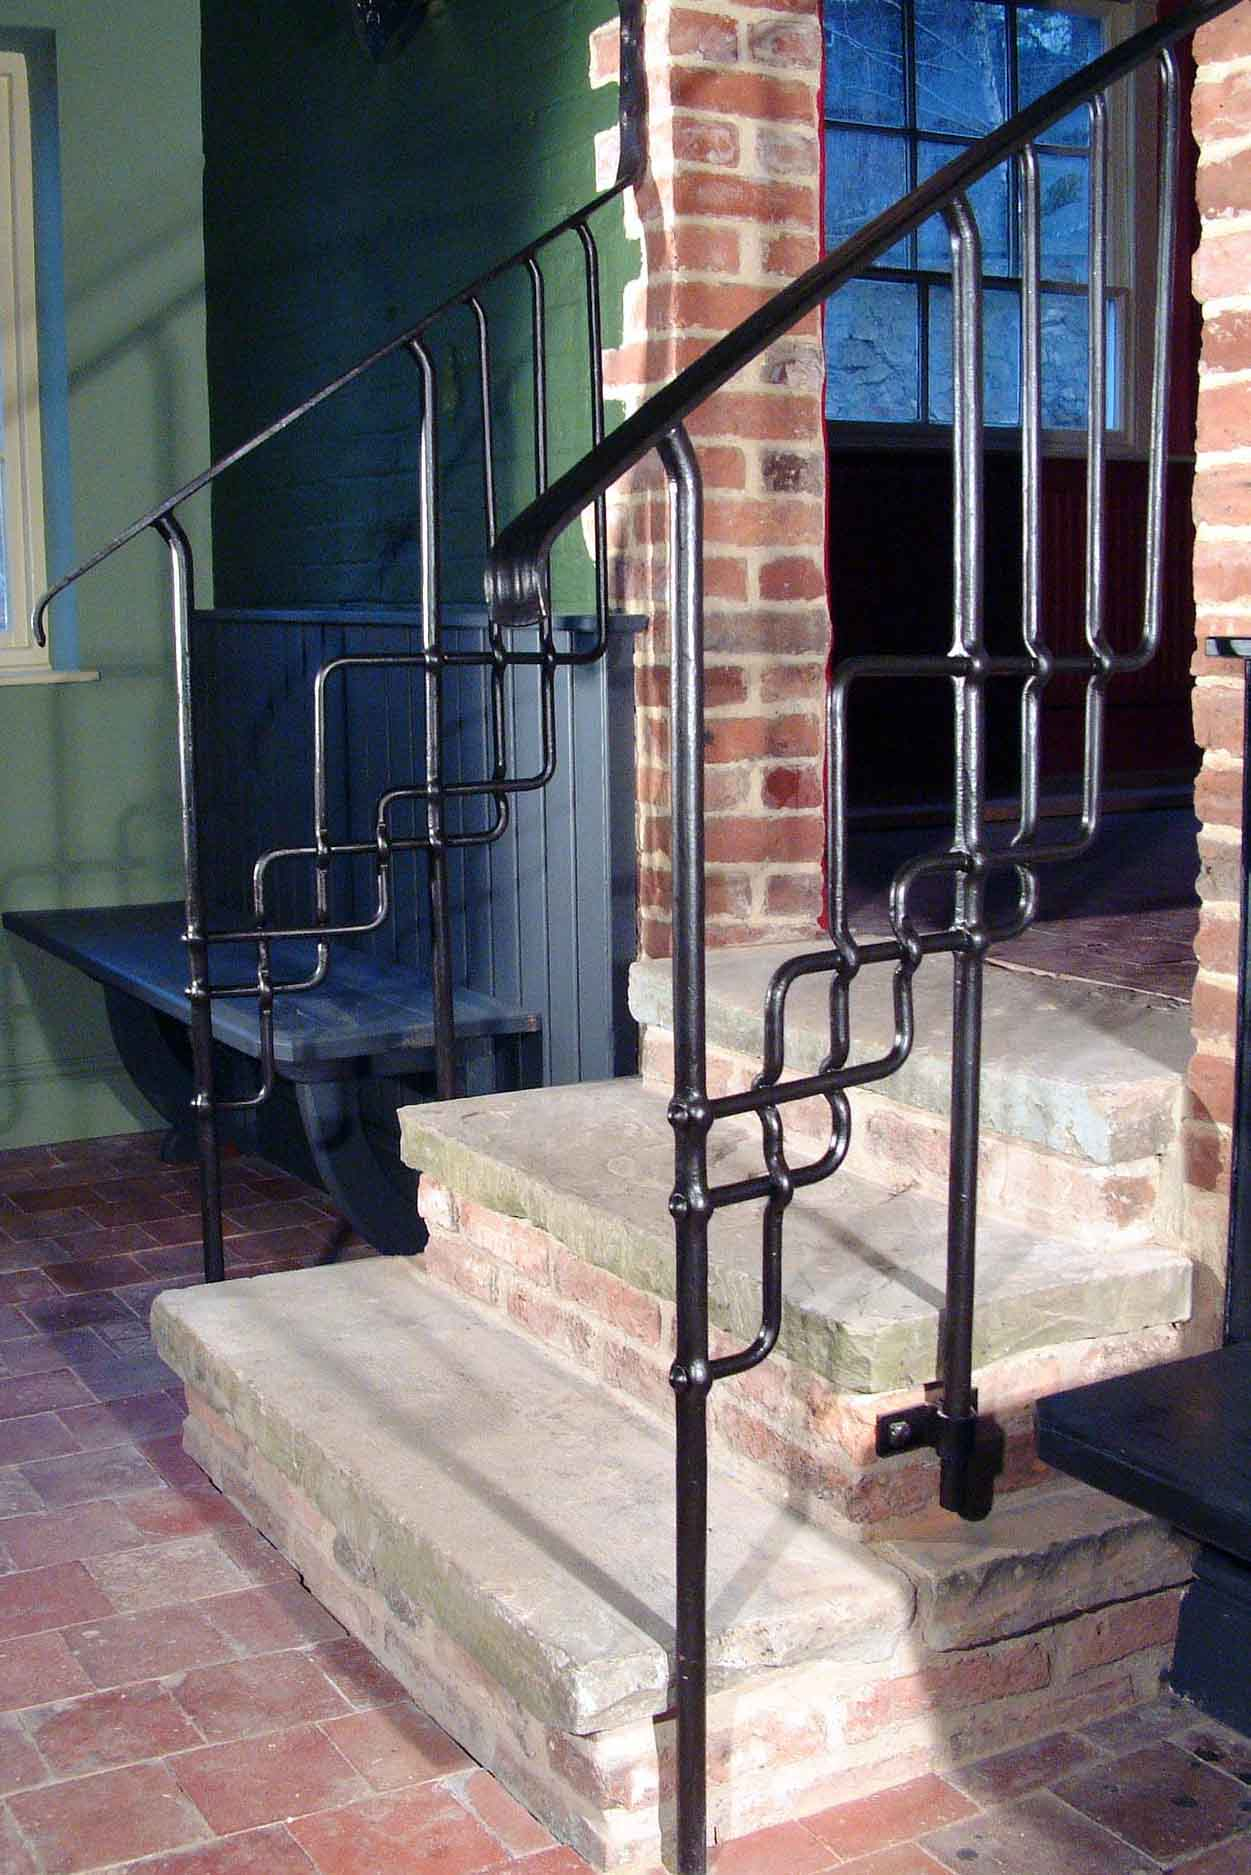 3 Horseshoes handrail